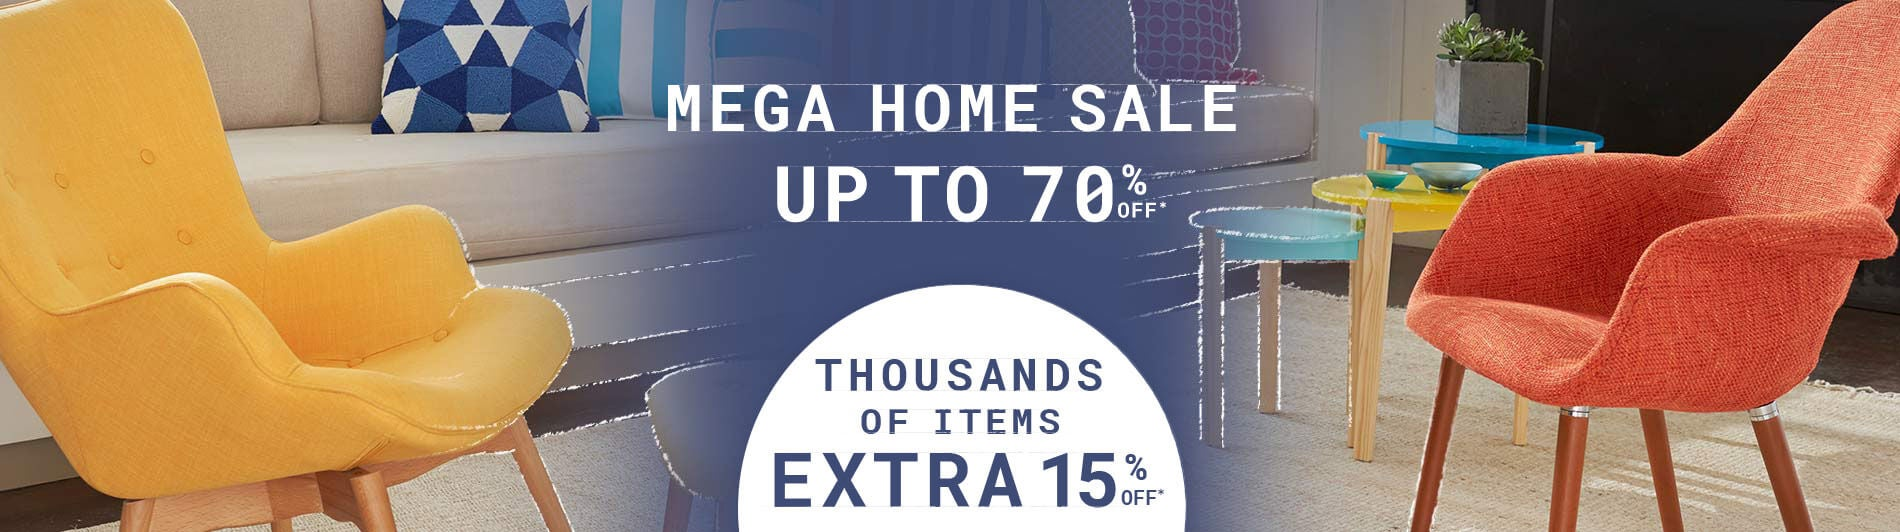 Mega Home Sale. Up to 70% Off.